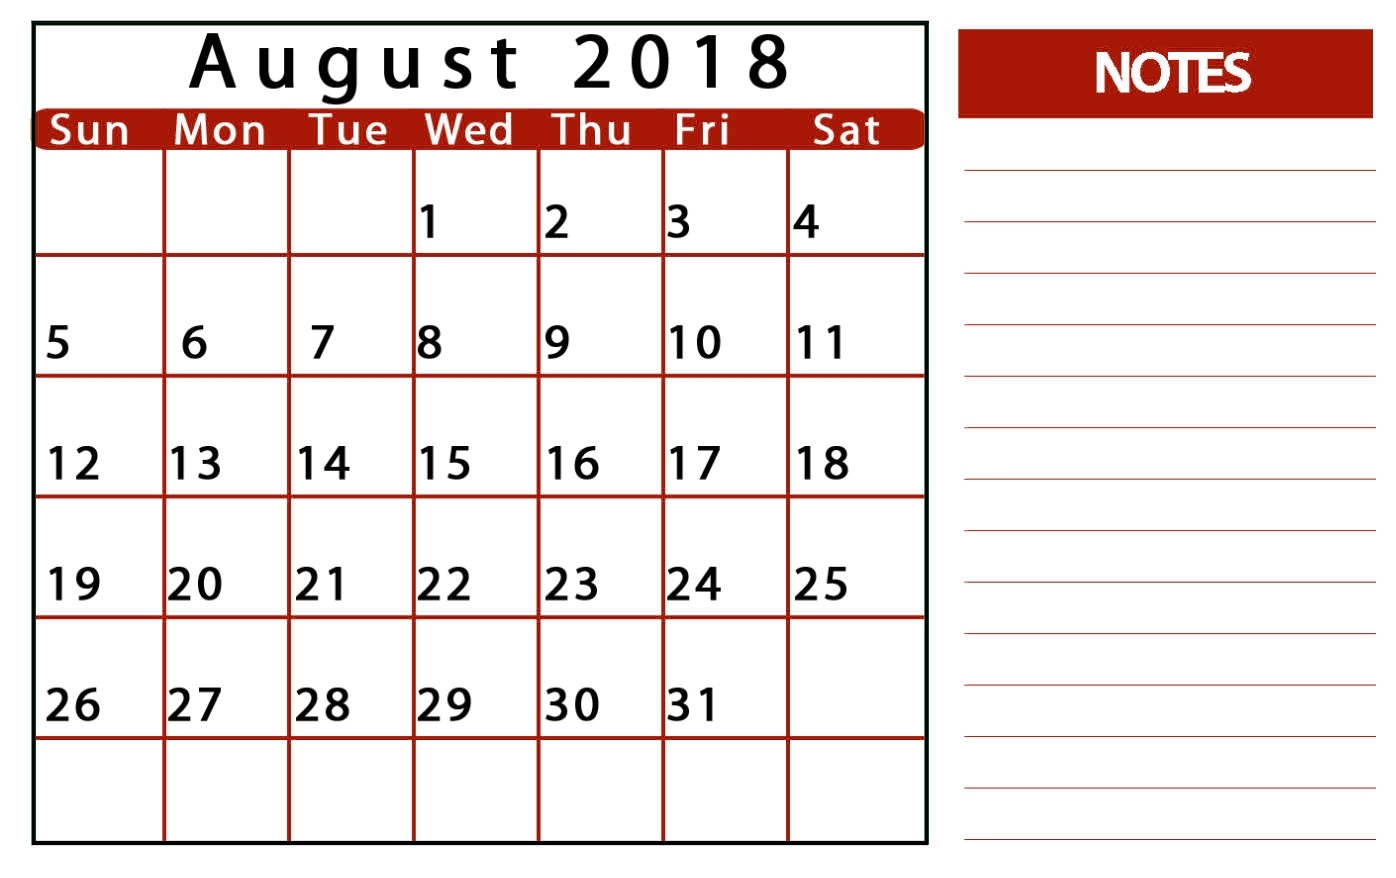 blank calendar august 2018 printable free template Blank Calendar Of August 2018 Full Page erdferdf